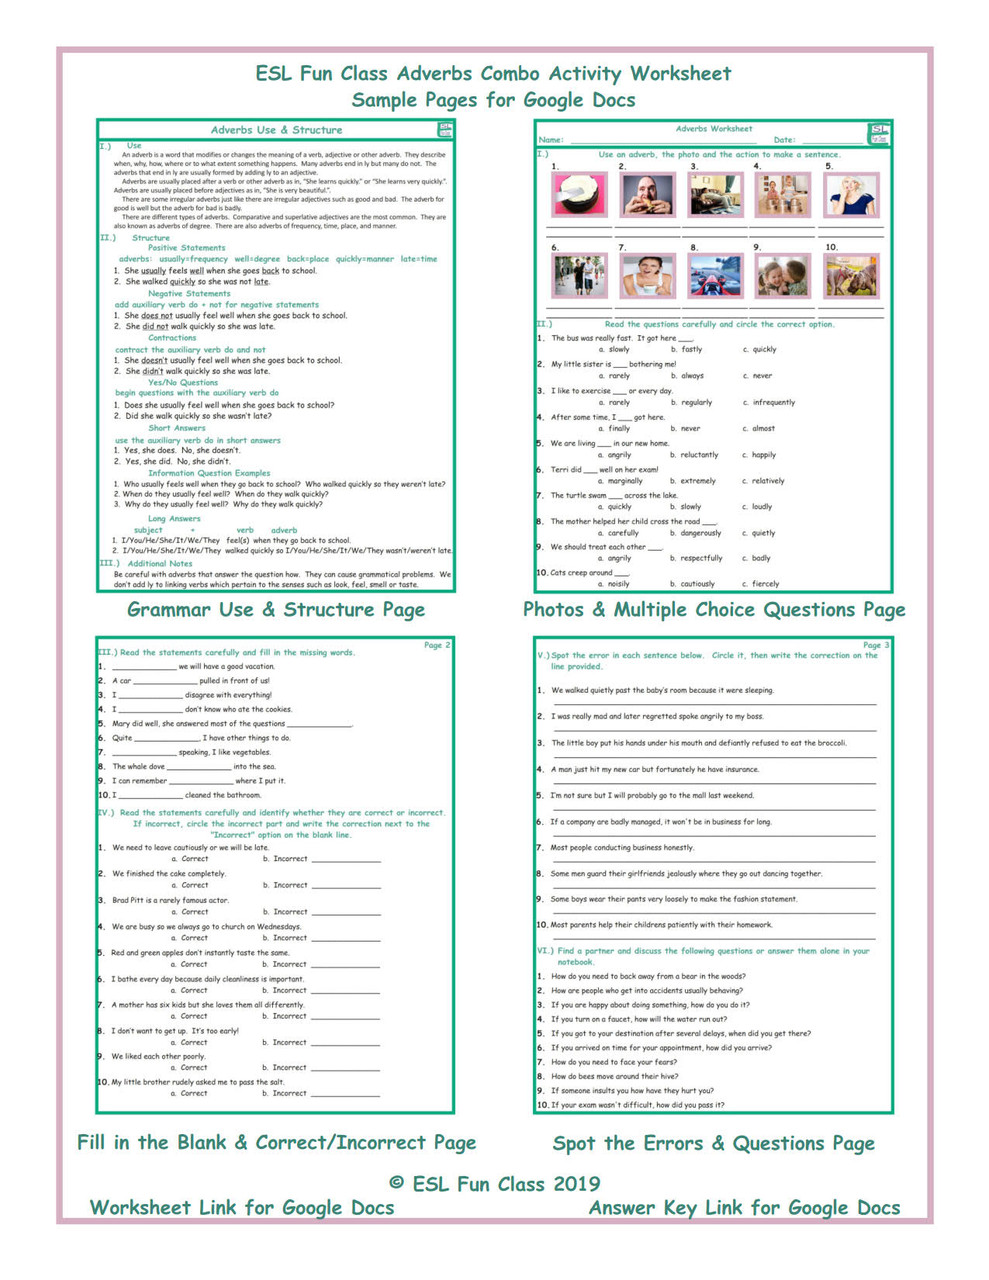 Adverbs Combo Interactive Worksheets for Google Docs LINKS - Amped Up  Learning [ 1280 x 989 Pixel ]